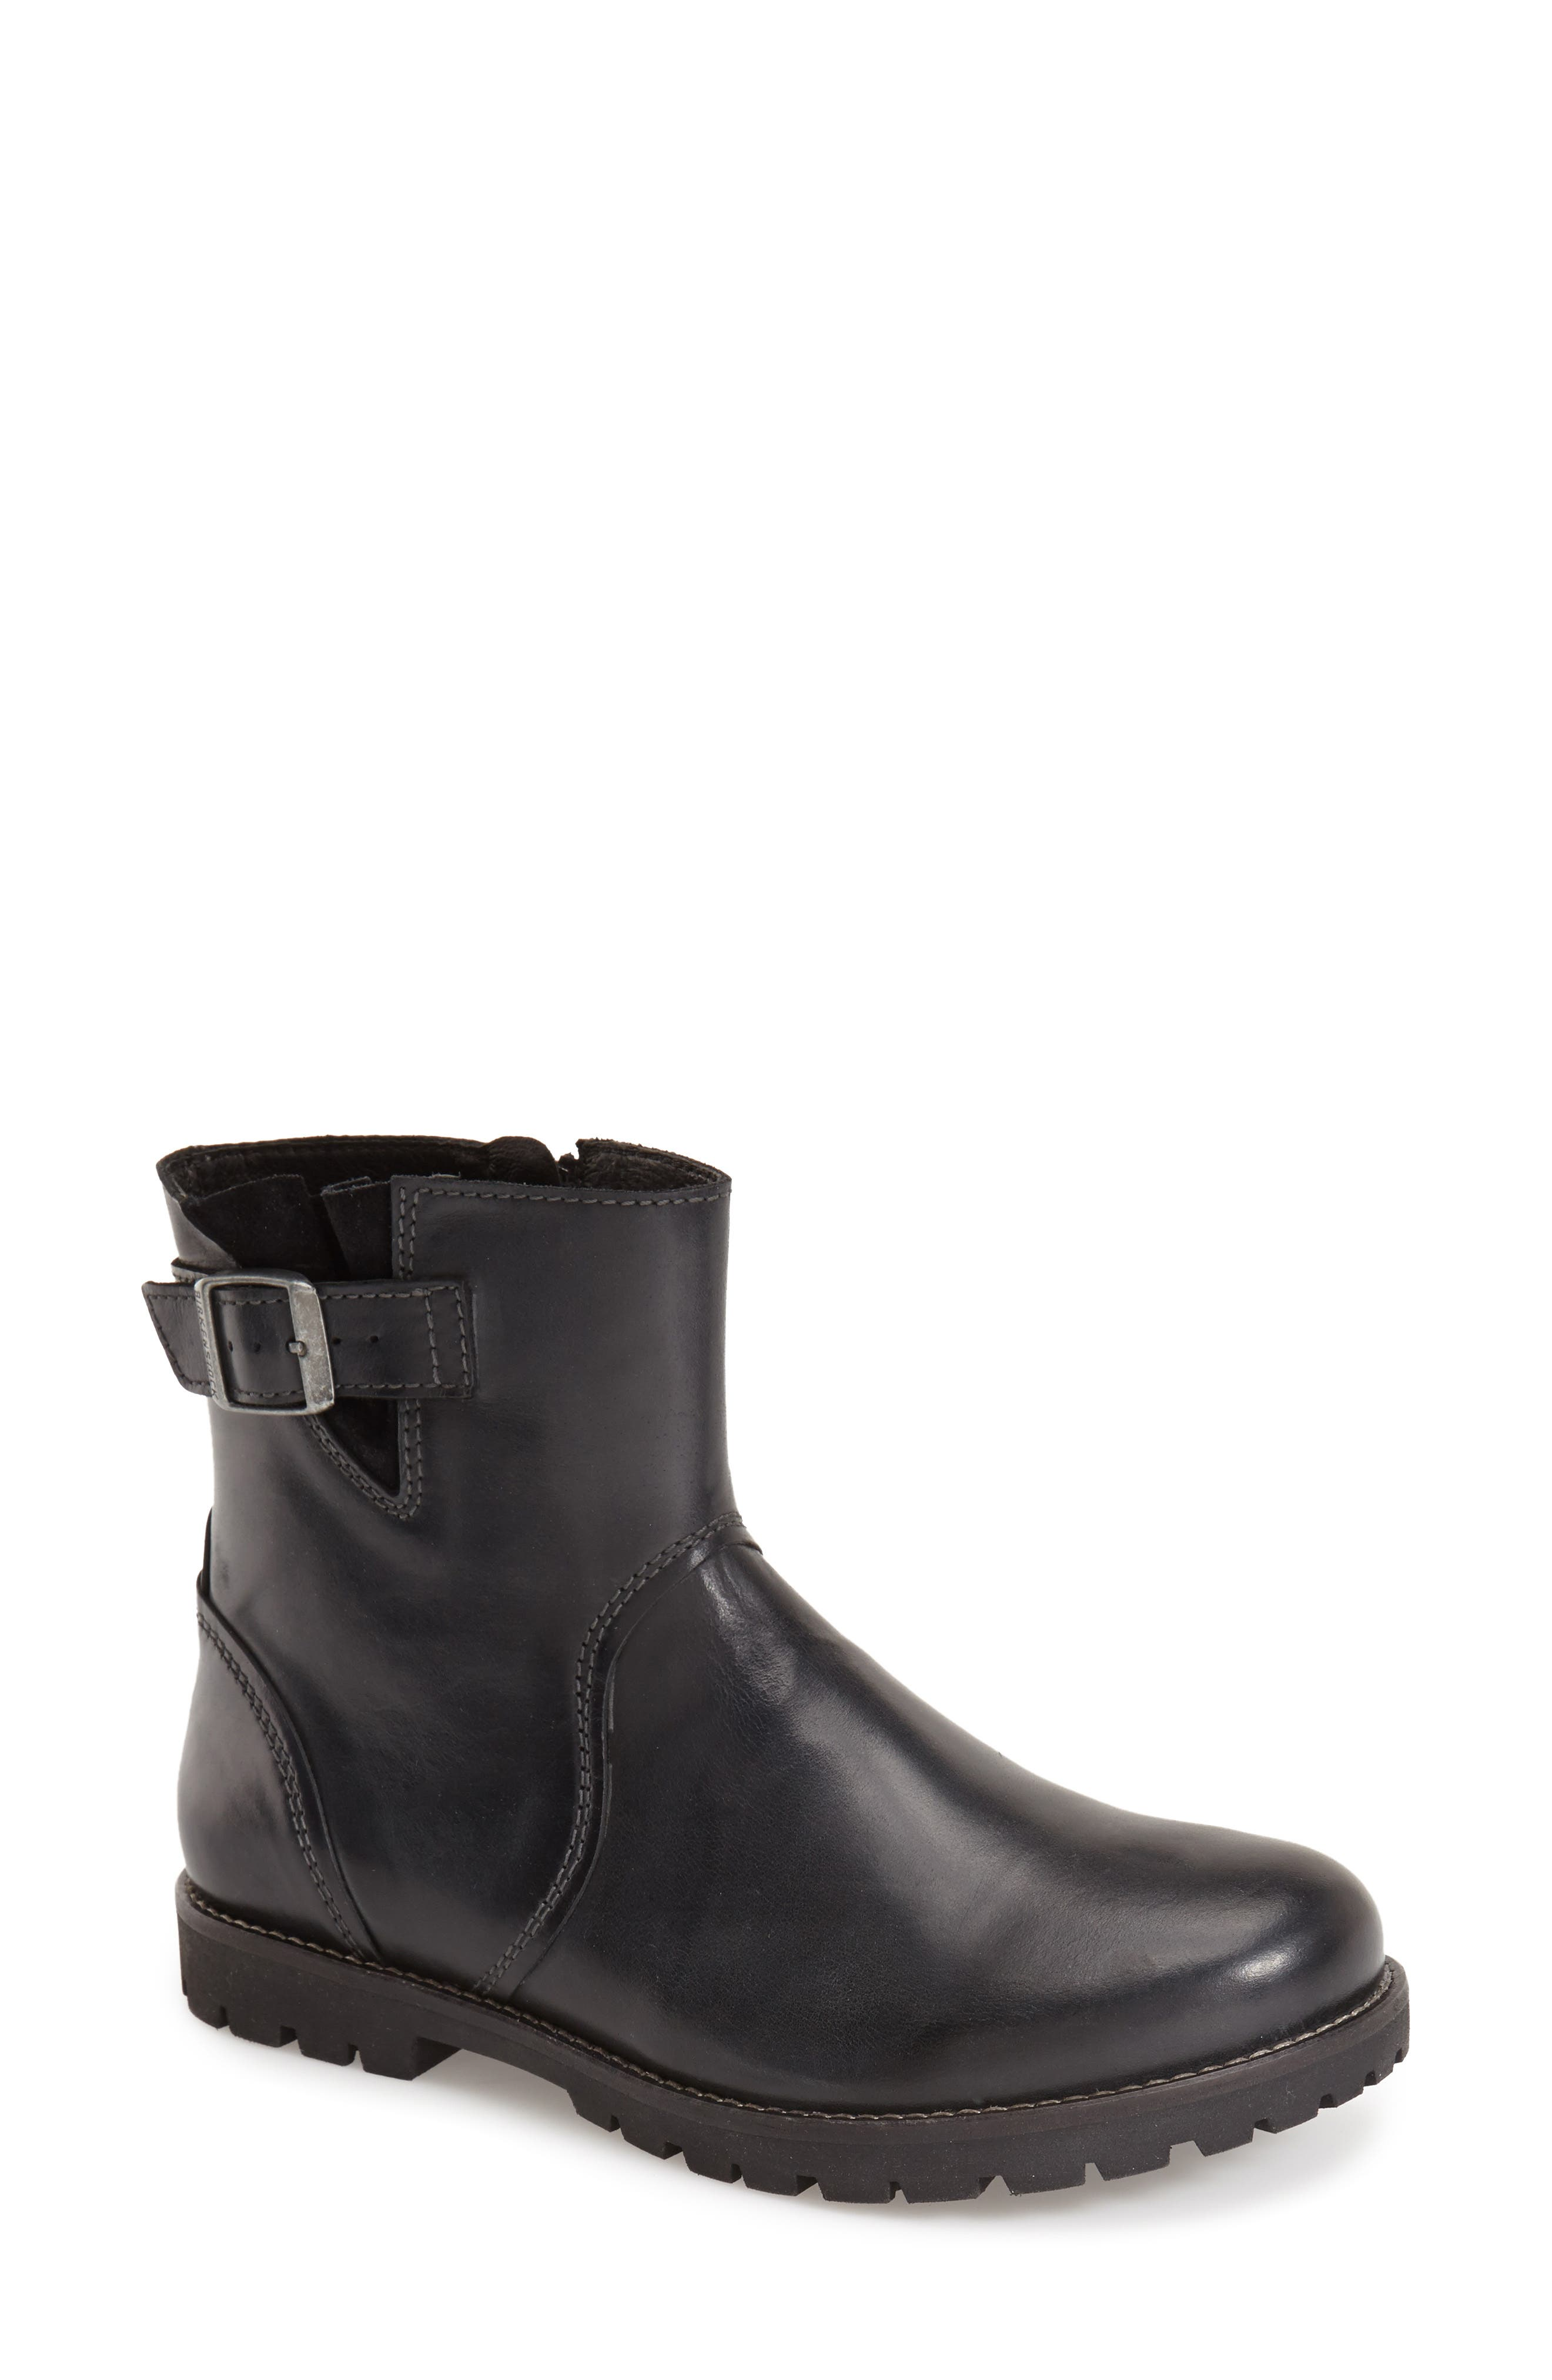 Alternate Image 1 Selected - Birkenstock 'Stowe' Boot (Women)